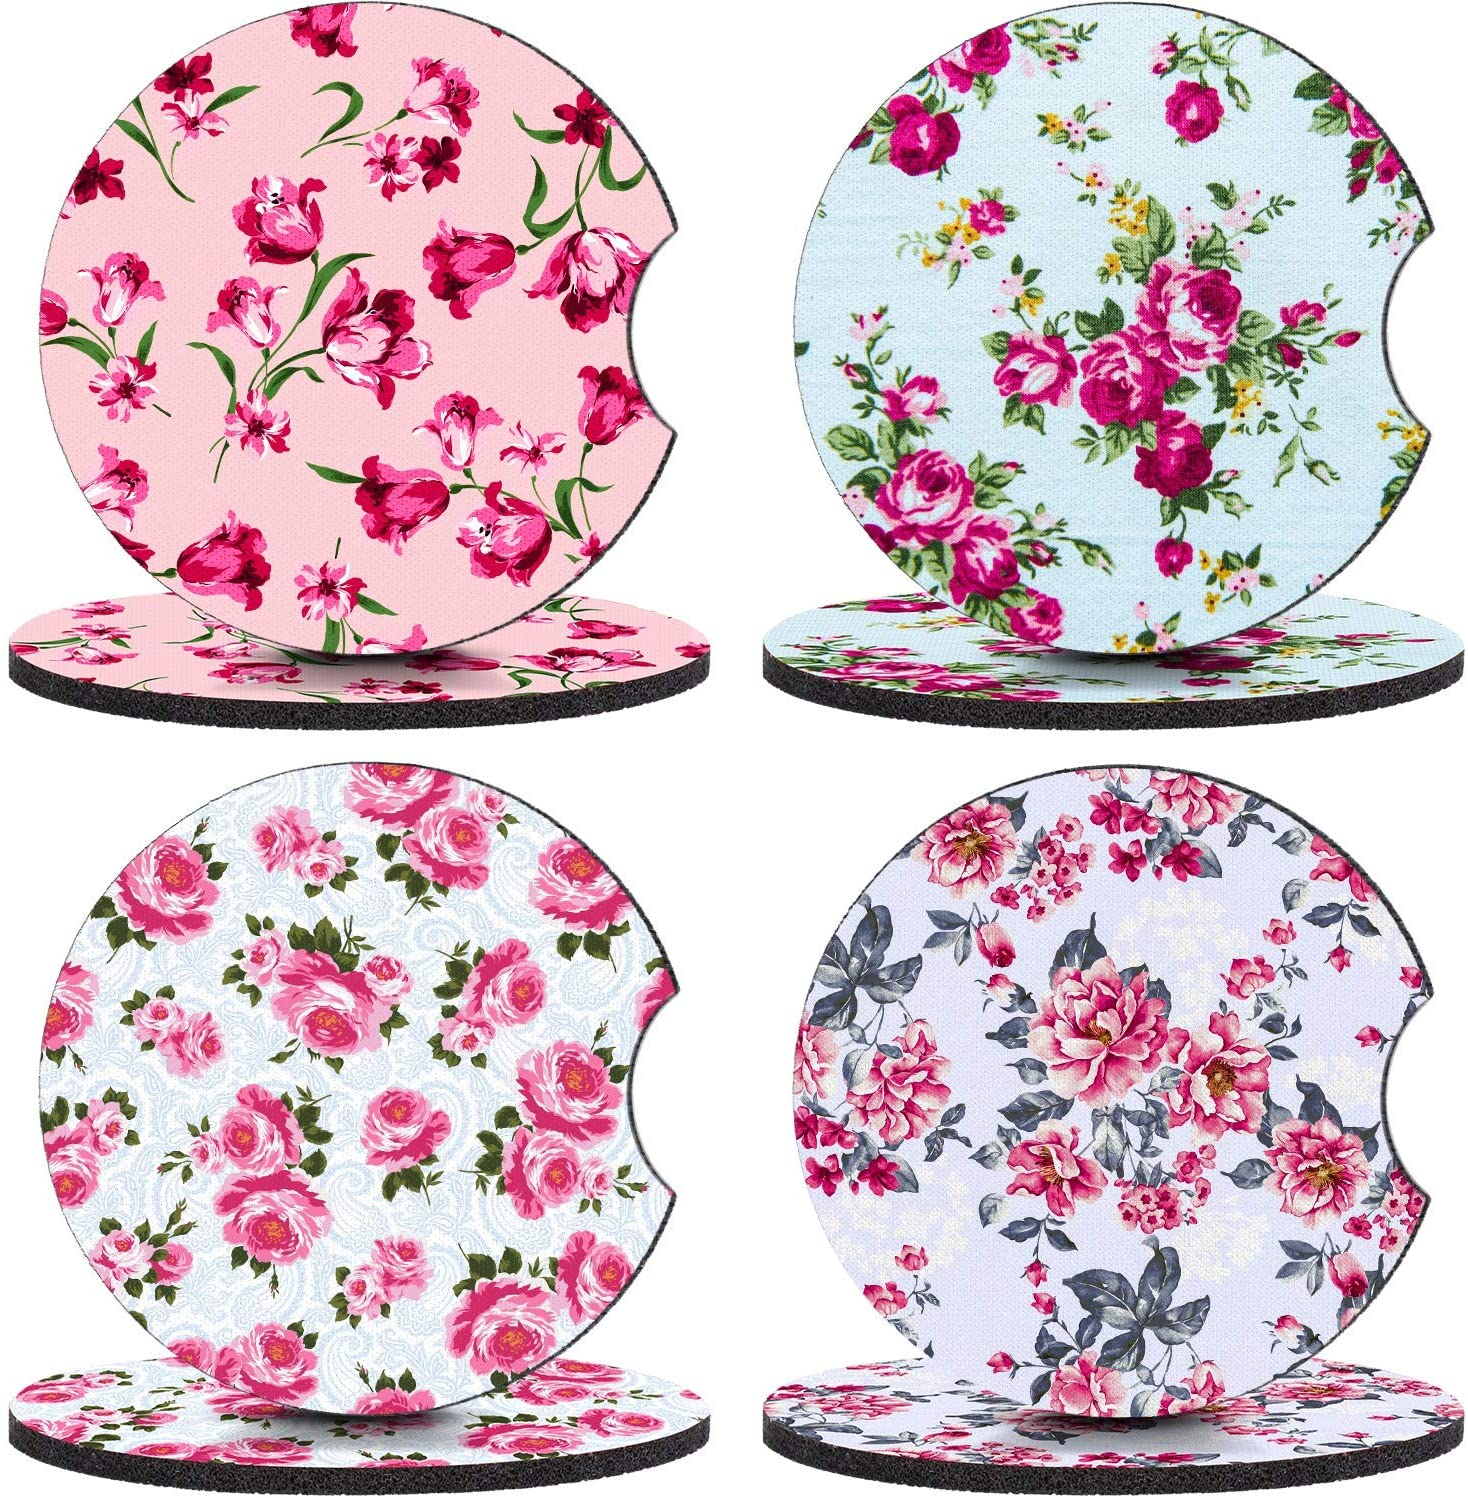 Boao 8 Pieces Floral Car Coaster Flower Printed Neoprene Car Cup Holder Coasters Cupholder Mug Coaster Royal Spring Flower Drink Cup Mat for Vehicle Car Accessories, 2.56 Inch